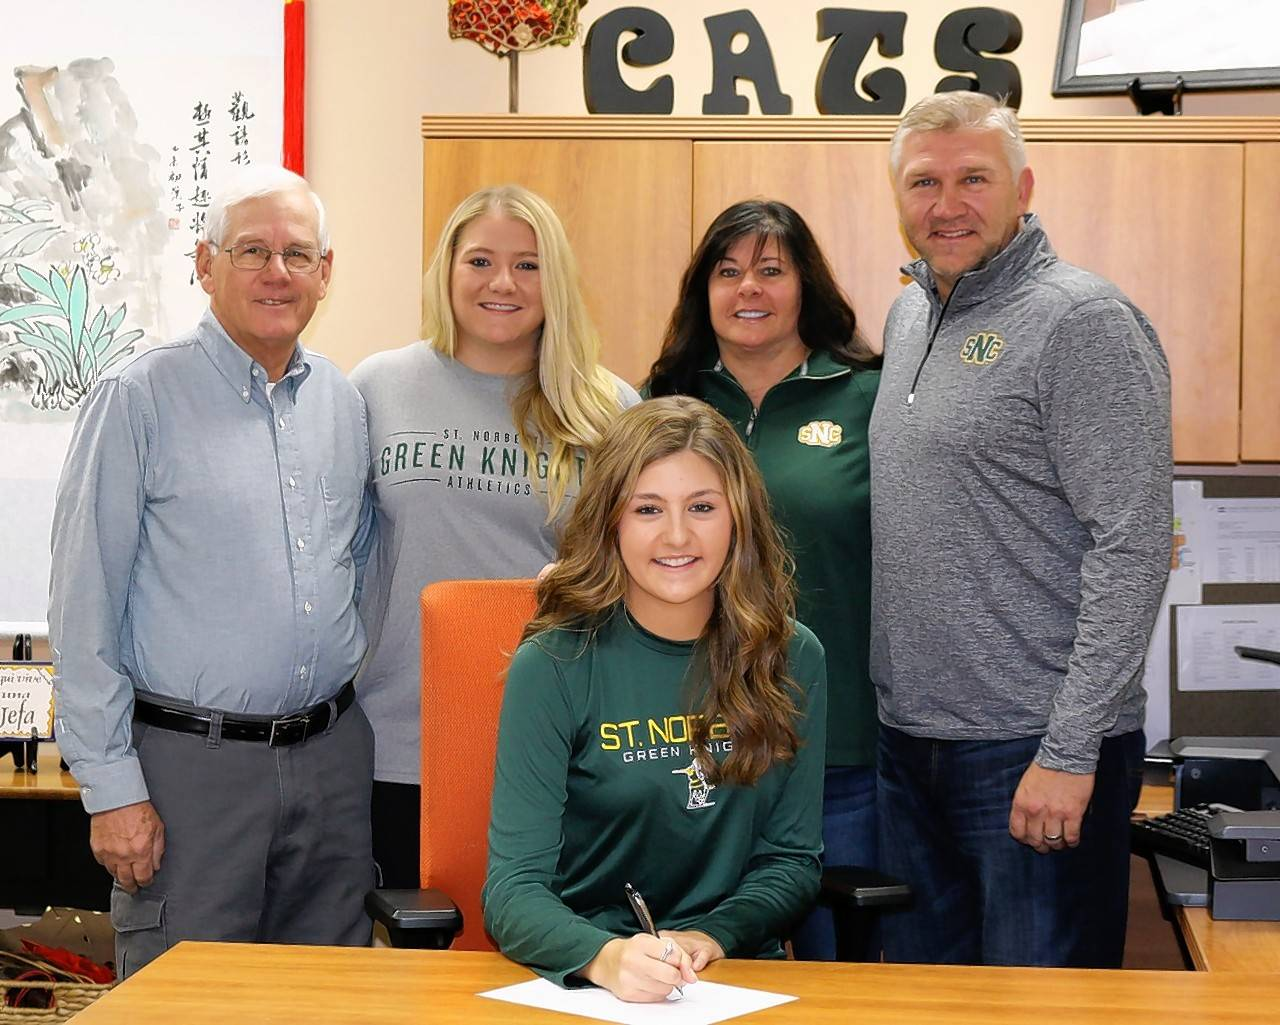 Libertyville's Lauren Paulson signs her commitment to play tennis at St. Norbert College. Pictured behind her from left are coach Craig Hunter, sister Sarah Paulson and parents Tammy and Stephen Paulson.